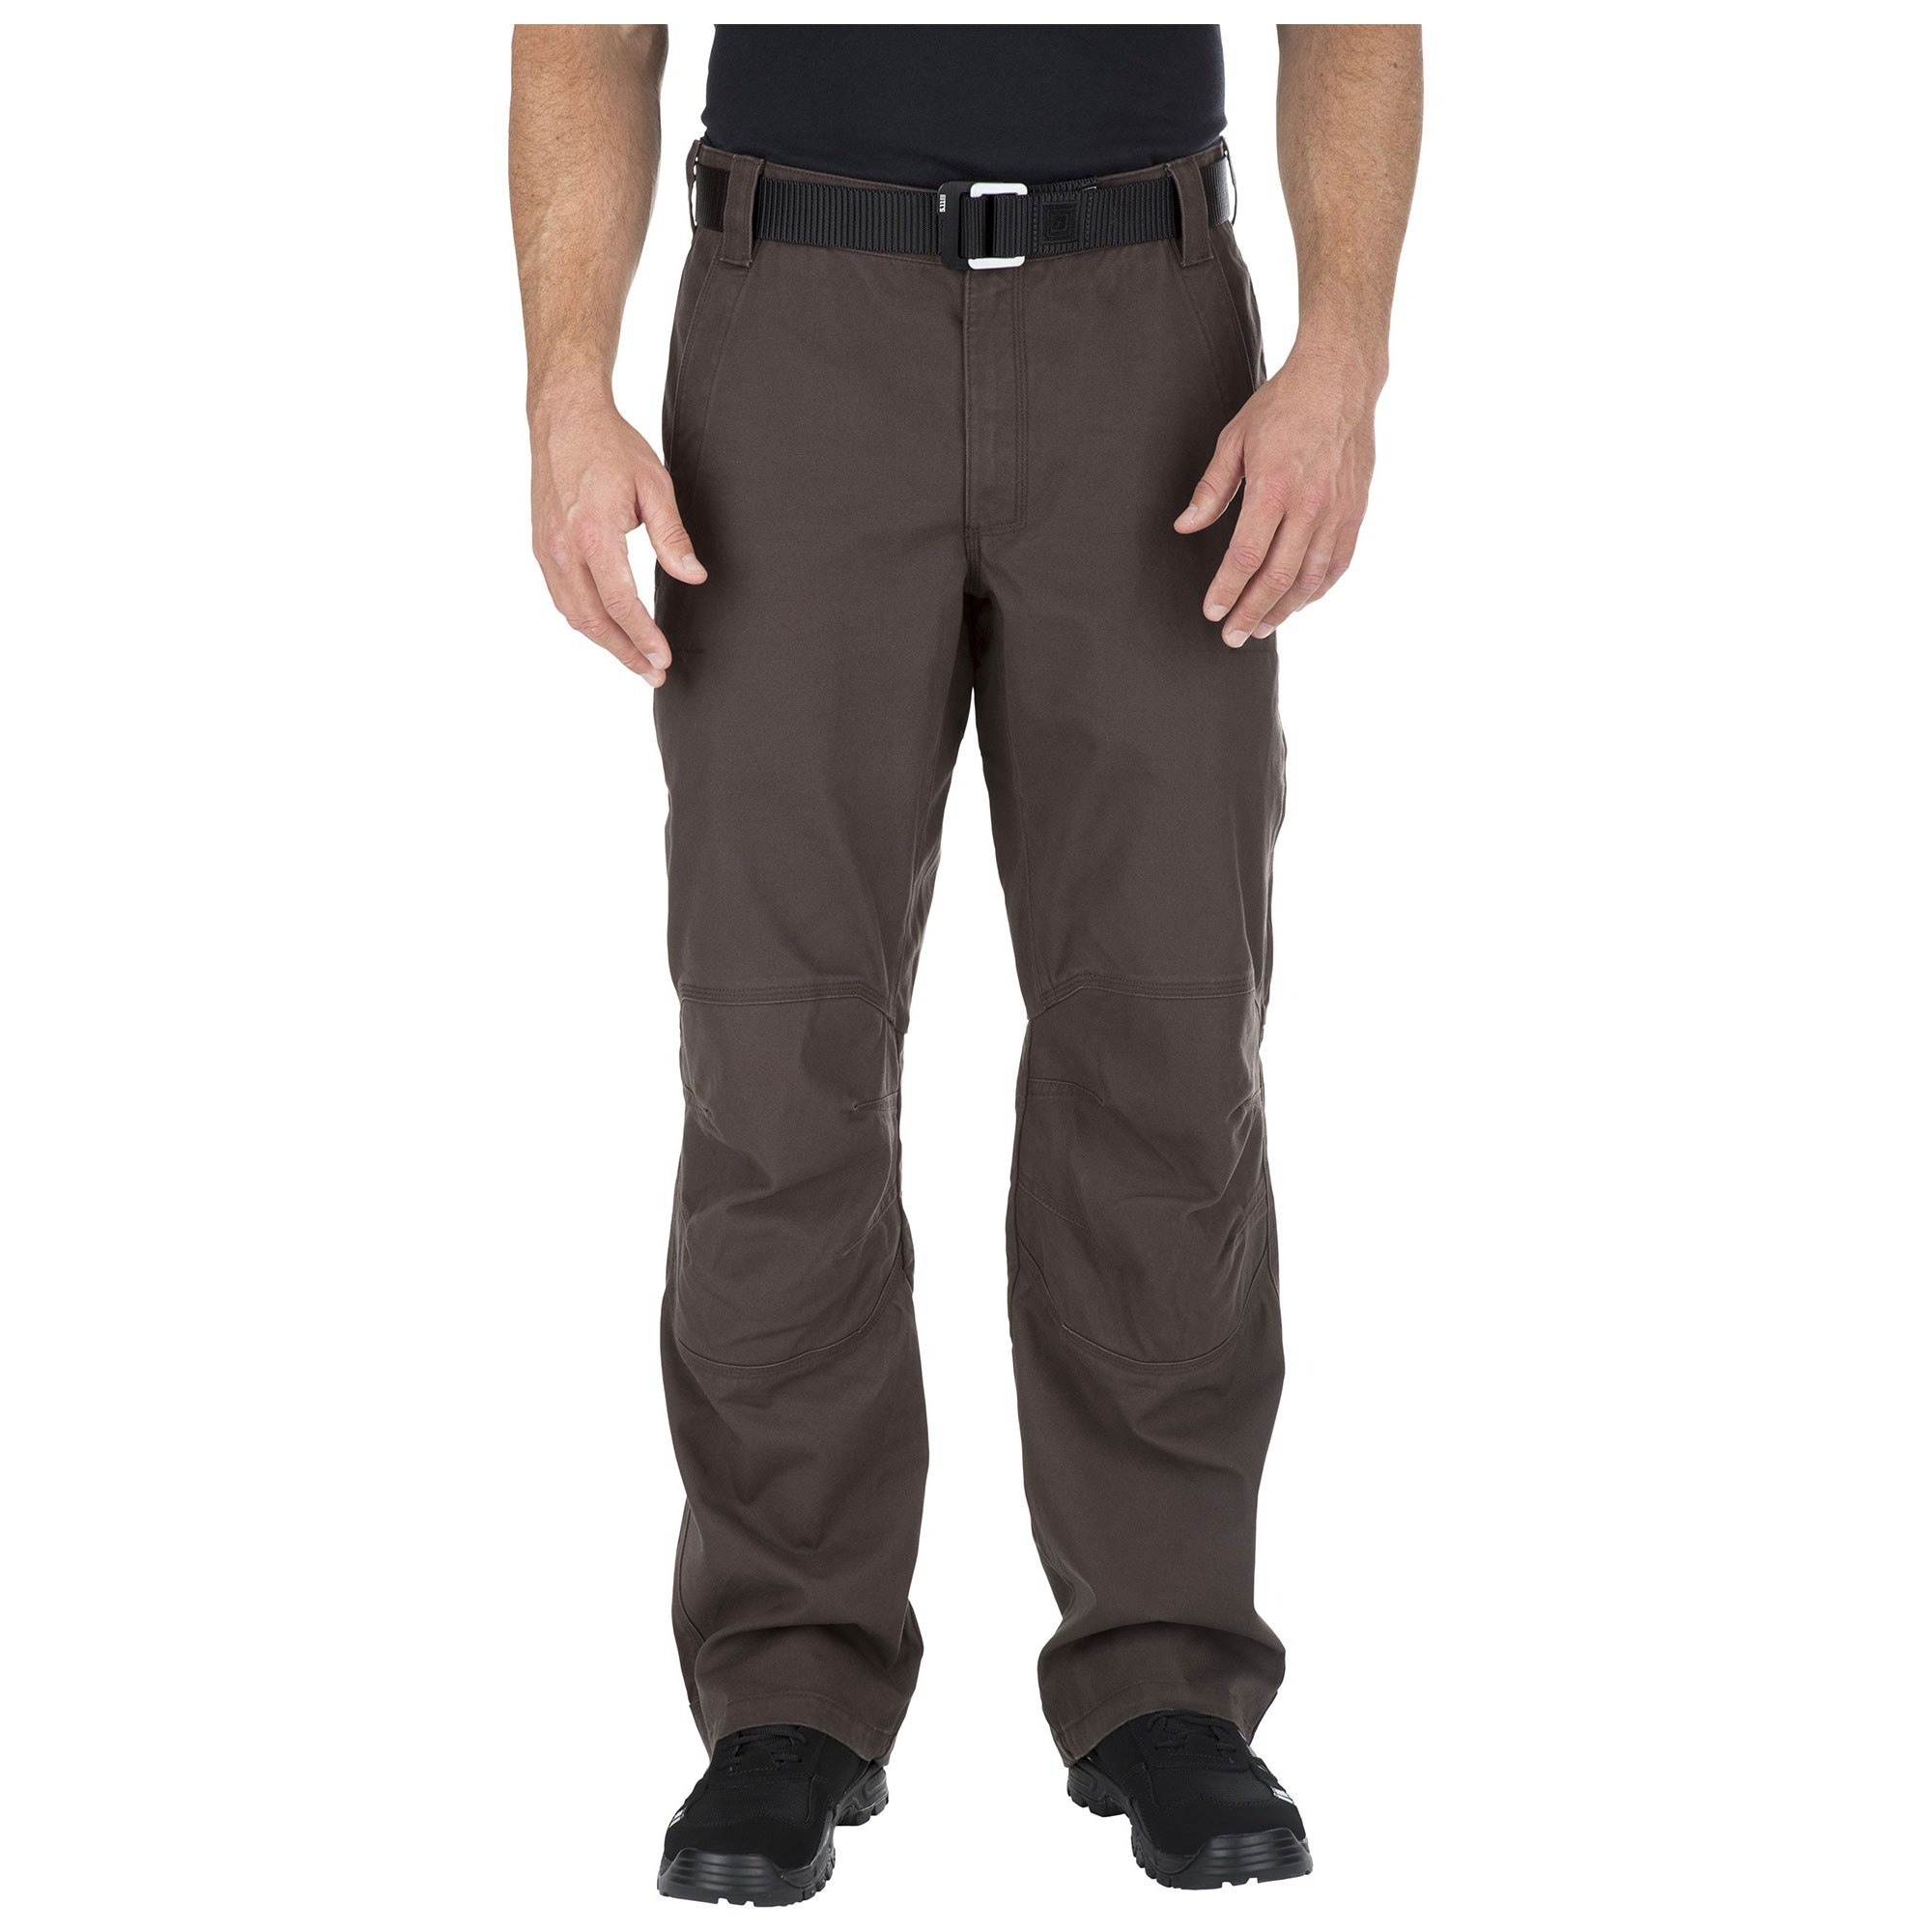 5f476d5f48 5.11 Tactical Men's Kodiak Pant | Up to 26% Off 5 Star Rating w/ Free  Shipping and Handling